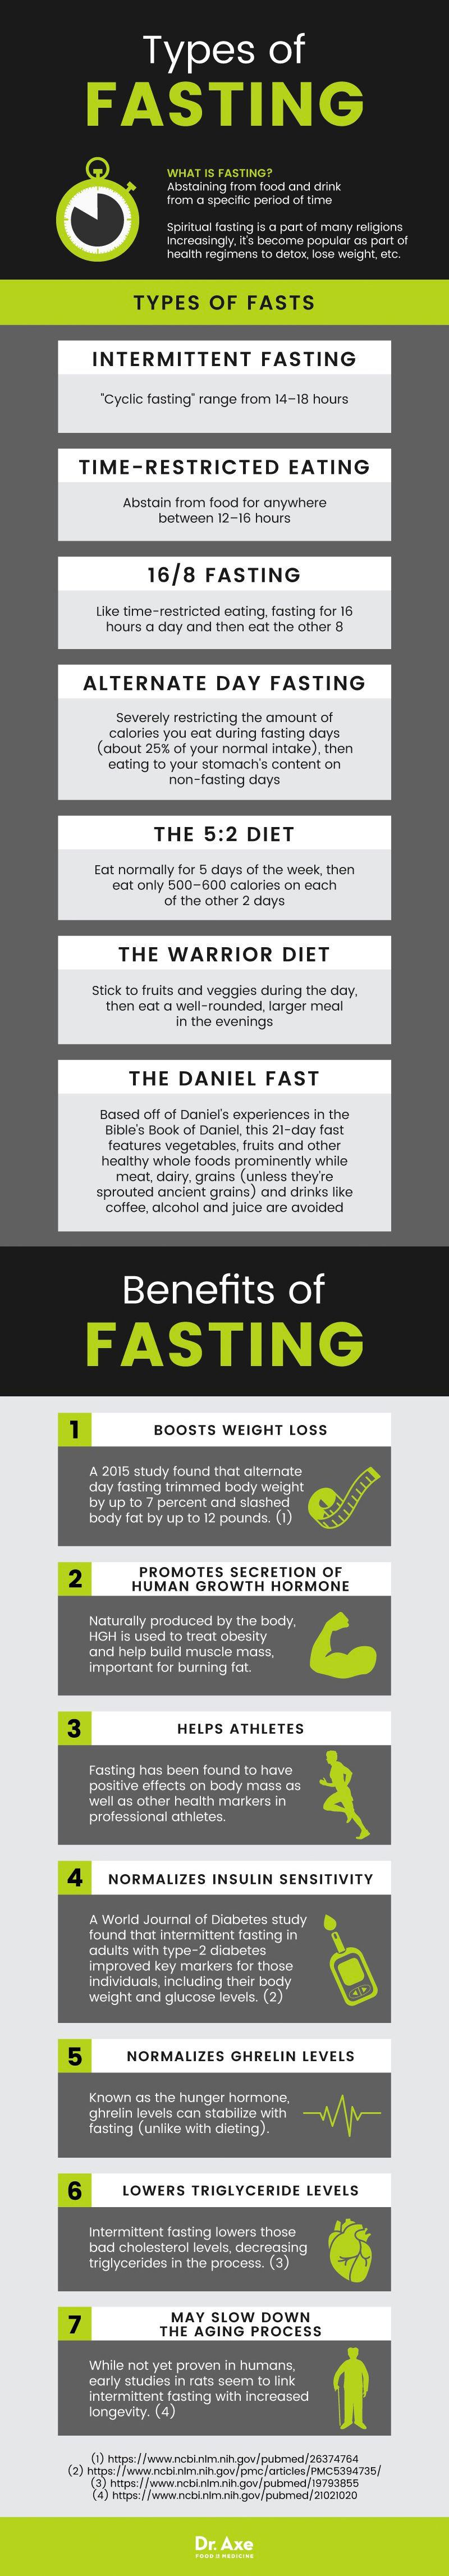 Abstinence Heals the Body and Soul: The Many Benefits of Fasting - Infographic